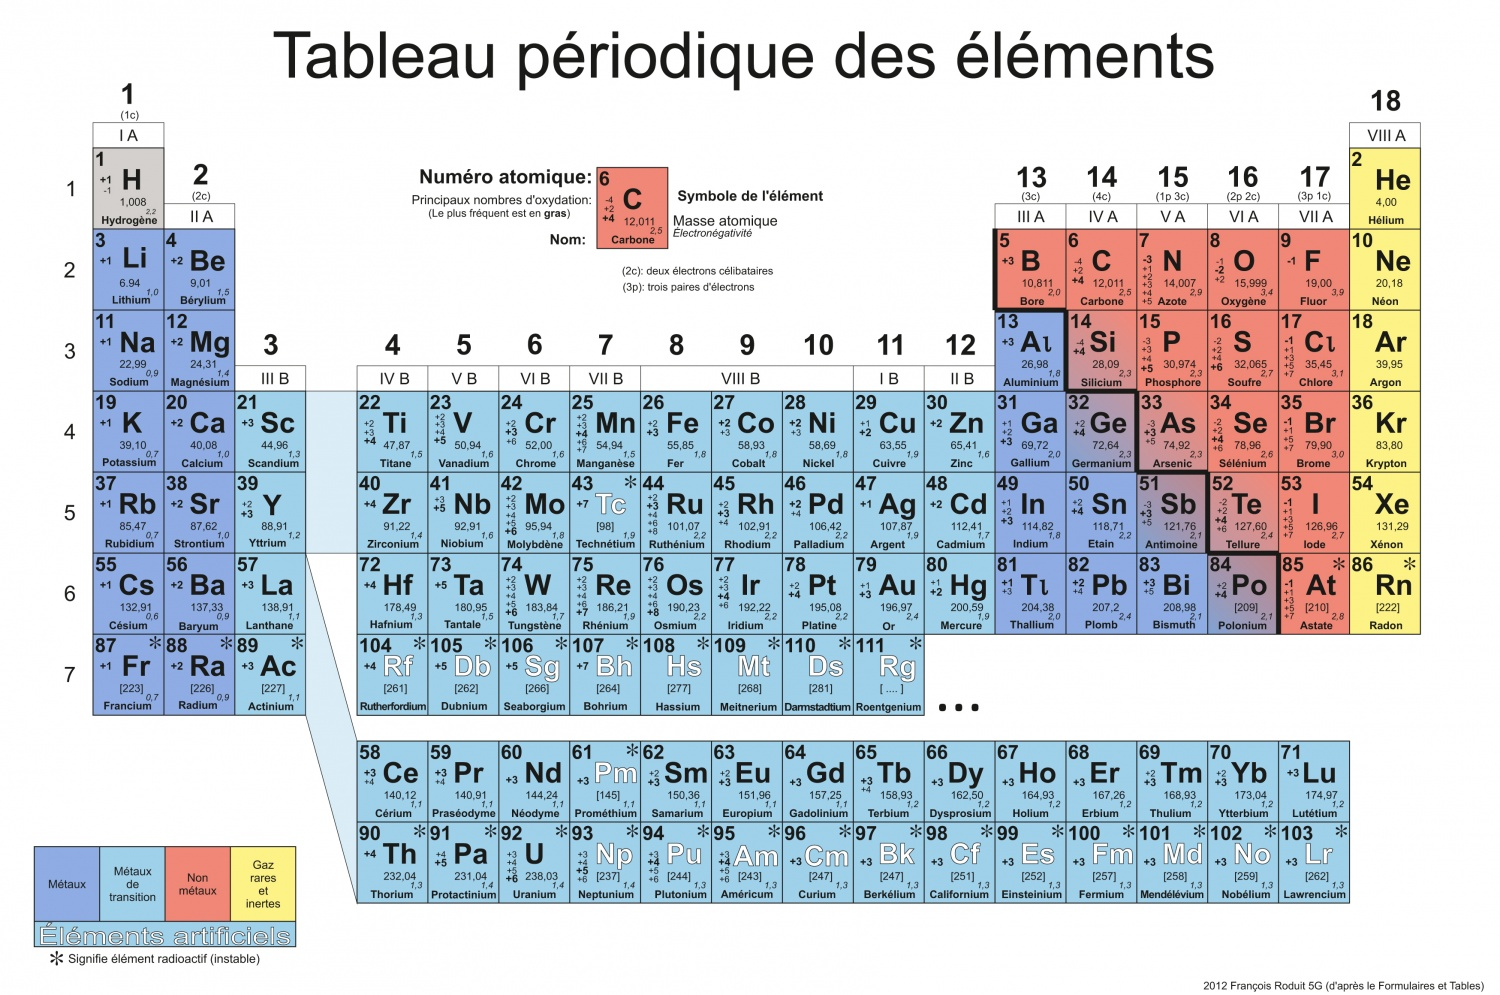 Tableau periodique des elements mendeleiev pdf for Tableau elements